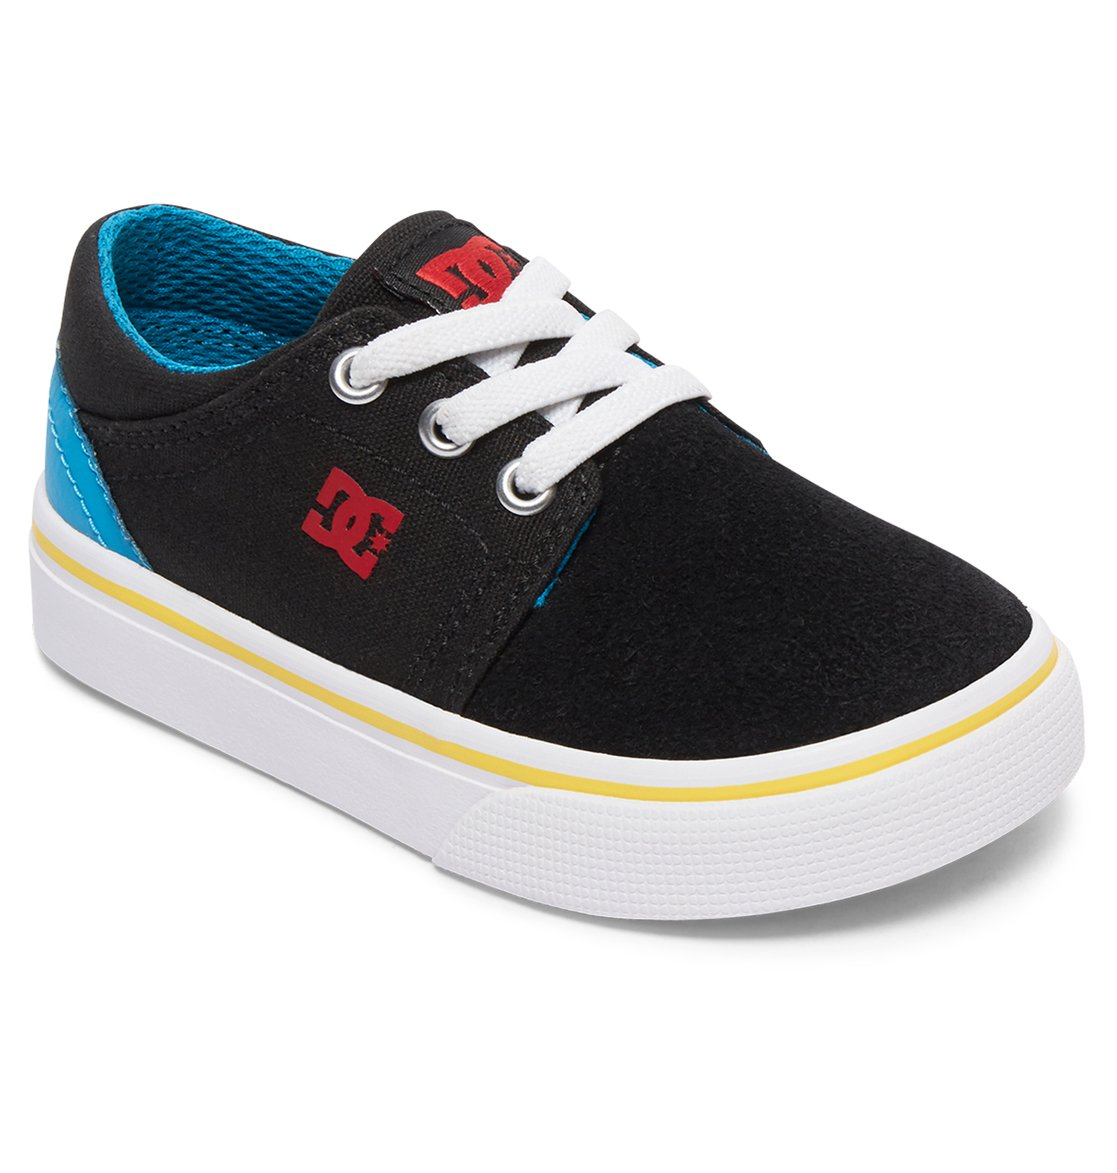 dc shoes marketing plan Compare restaurant and bar options in your hotel and others you plan to piercing, dc shoes, fossil view marketing, ross, ccrag.